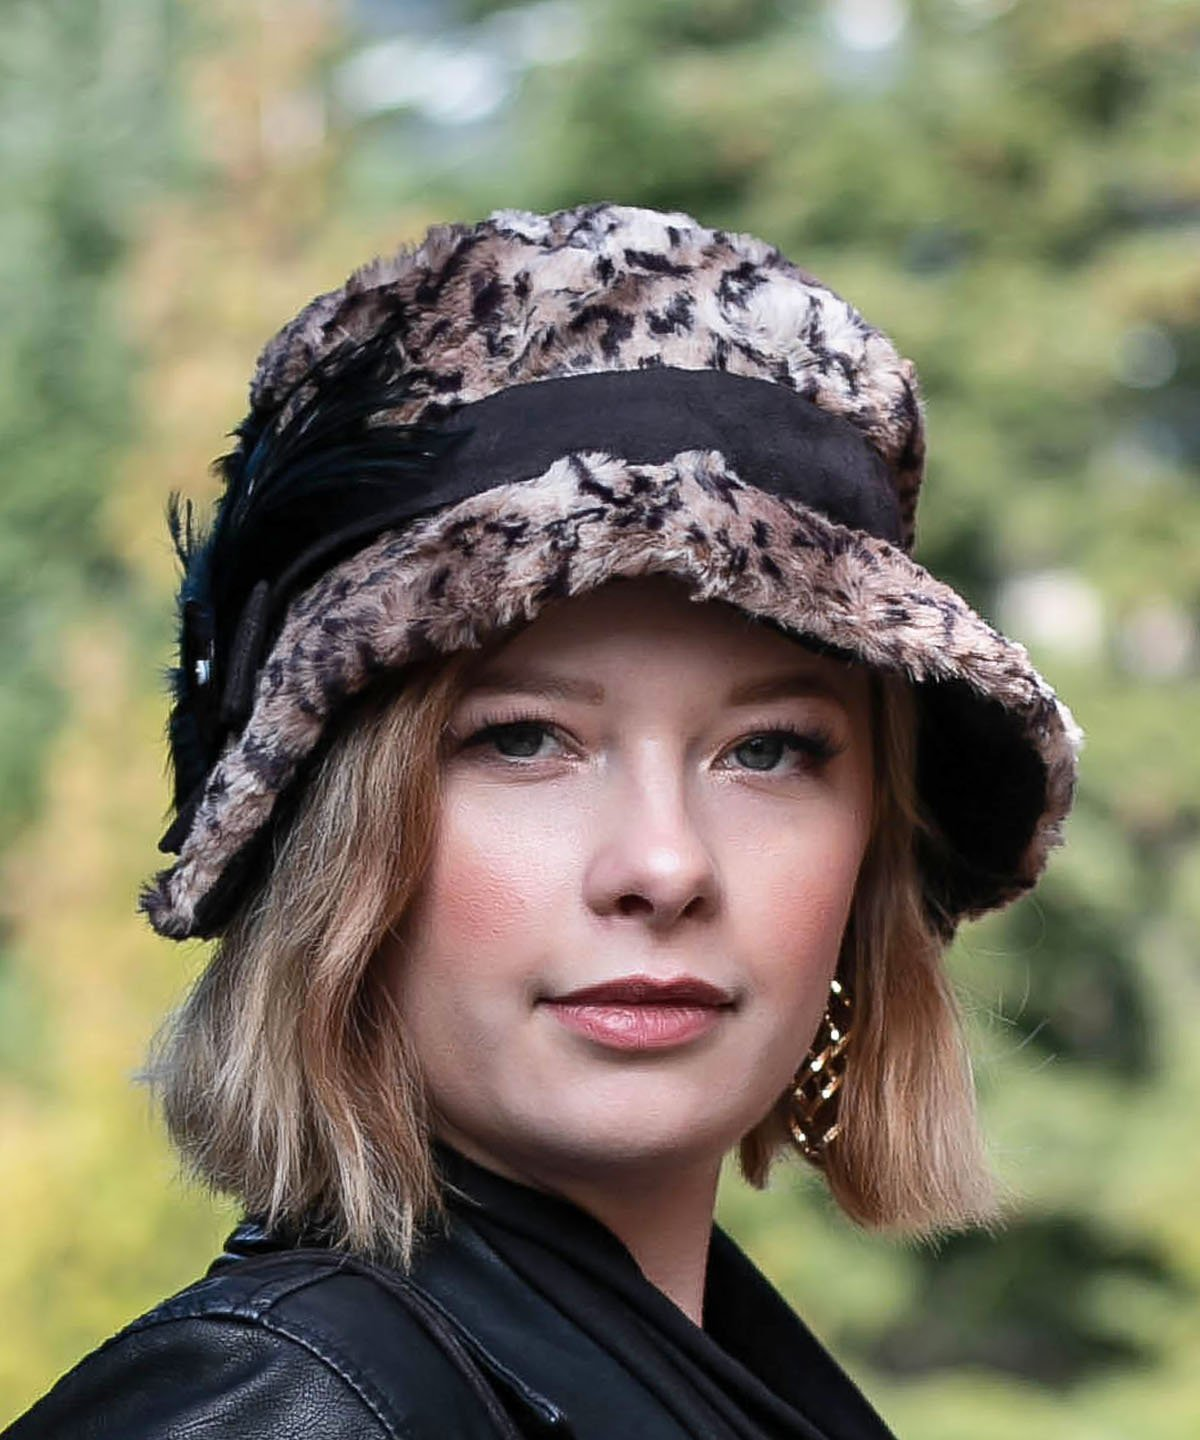 Abigail Style Hat - Luxury Faux Fur in Carpathian Lynx with Black Faux Suede Medium / Faux Suede Cross-Over Band - Black / Feather - Black Fan / Button - Black & Gold Capiz Shell Hats Pandemonium Millinery